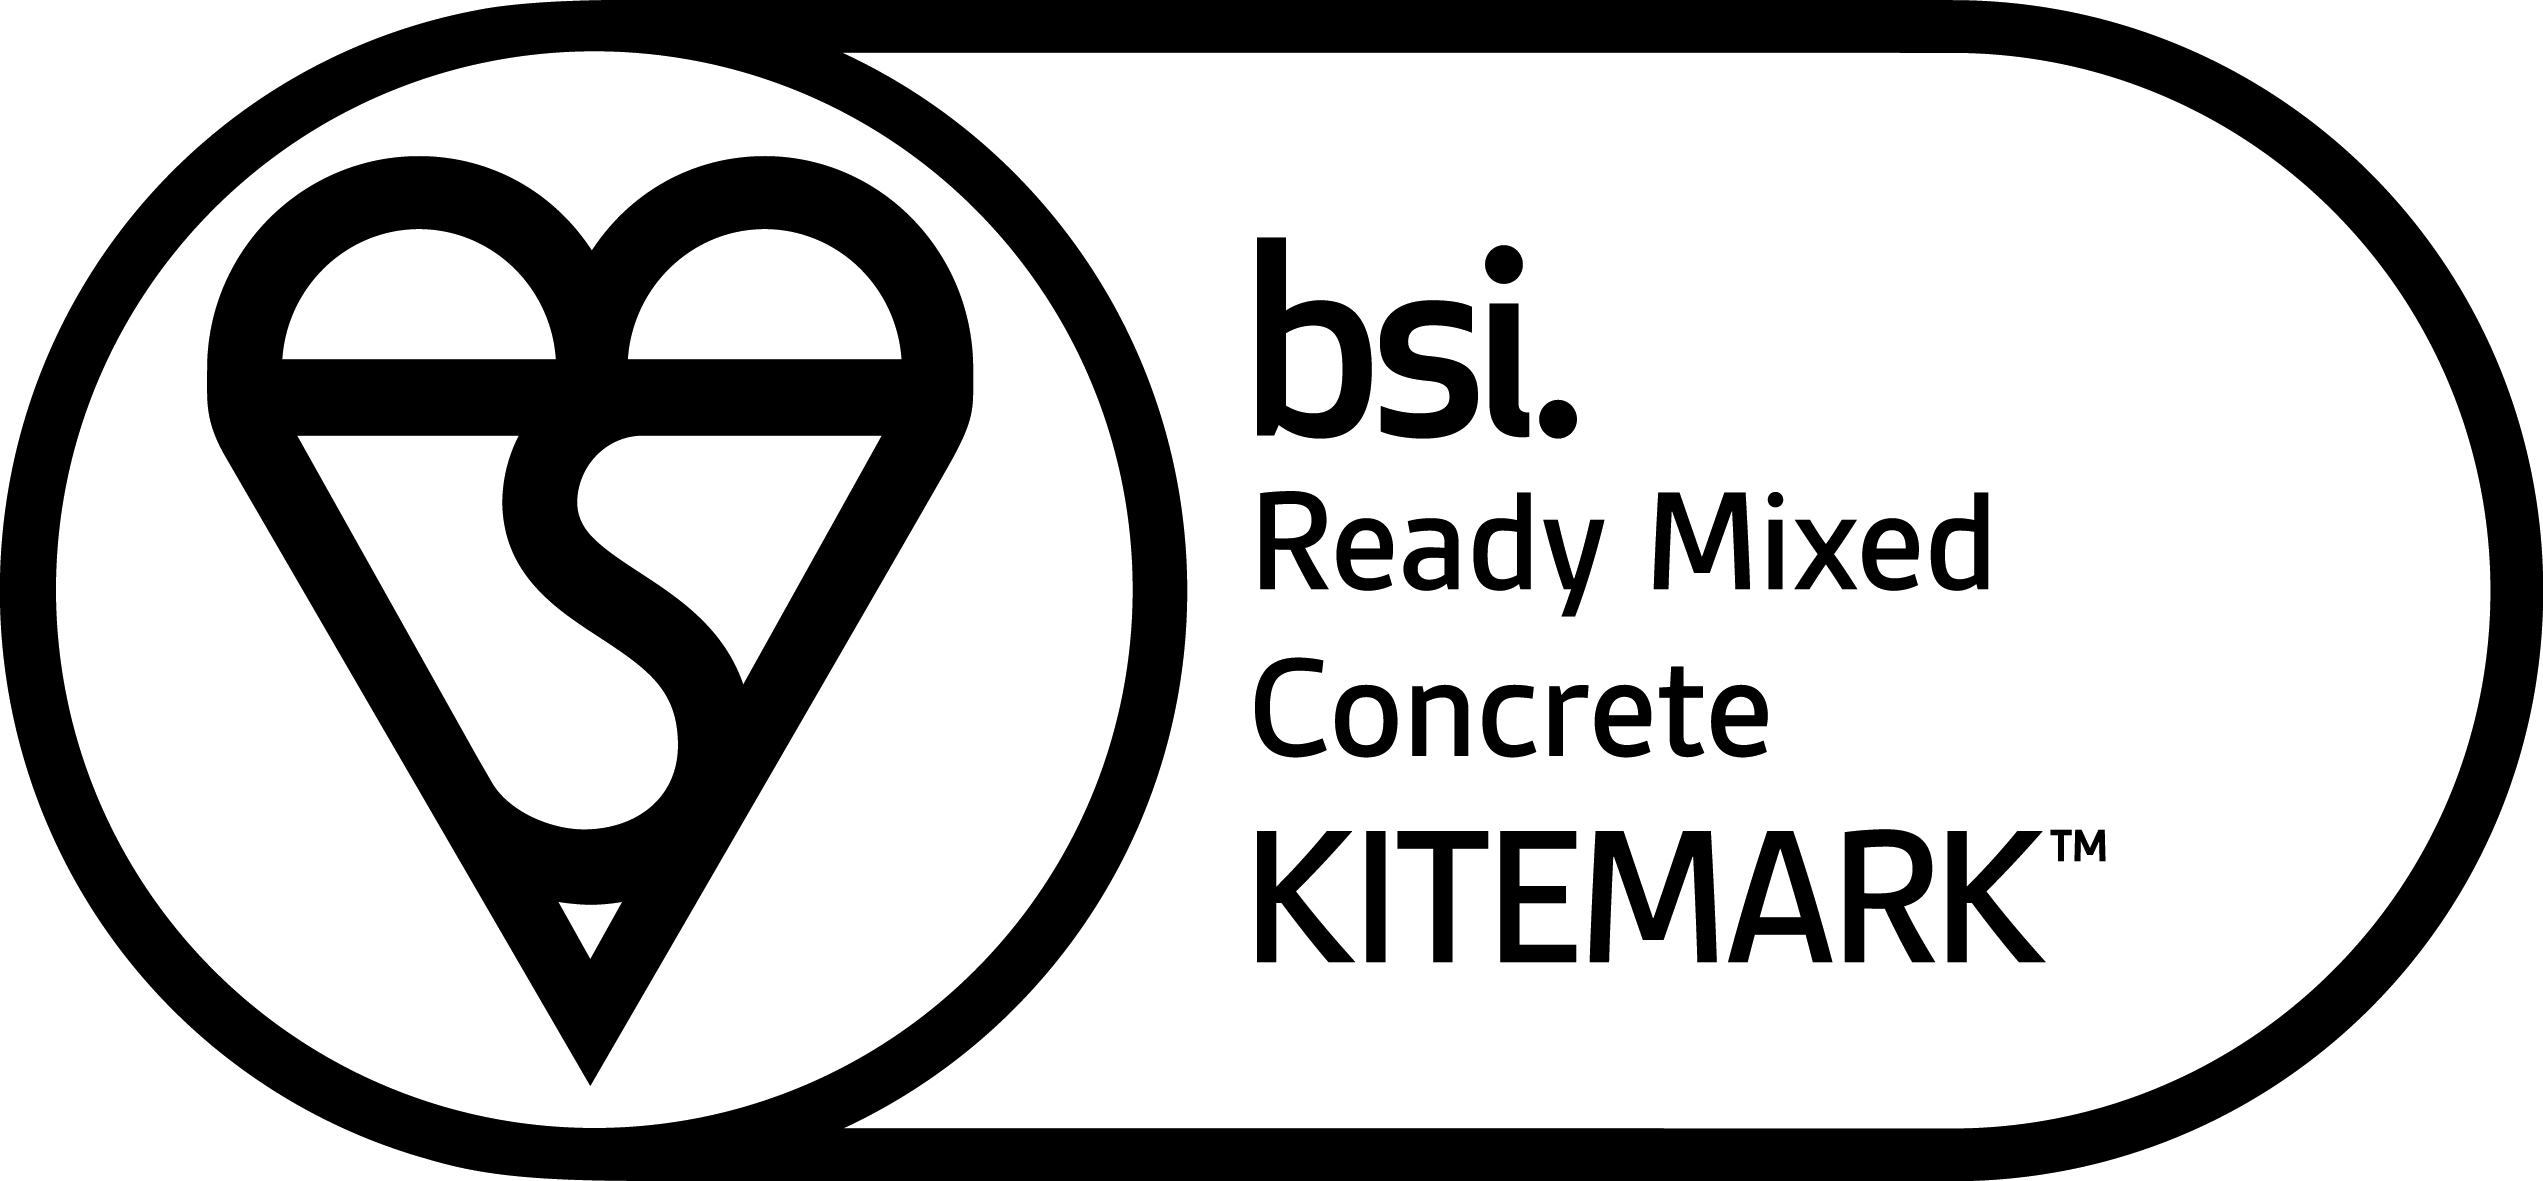 BSI Kitemark Keyline Ready Mixed Concrete